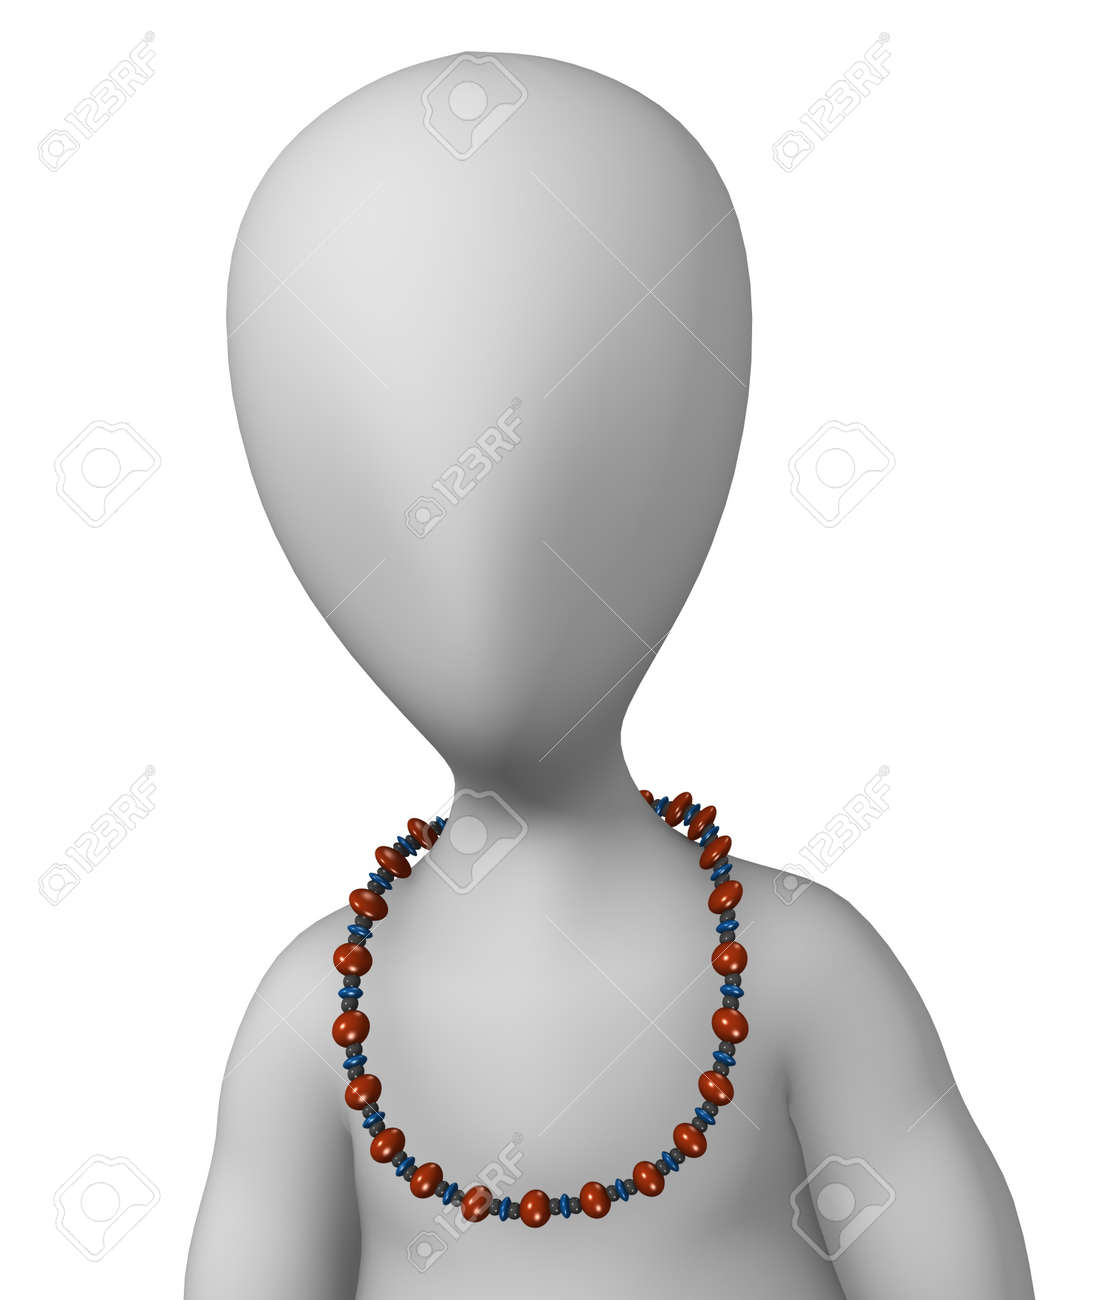 3d render of cartoon character with necklace Stock Photo - 12969180